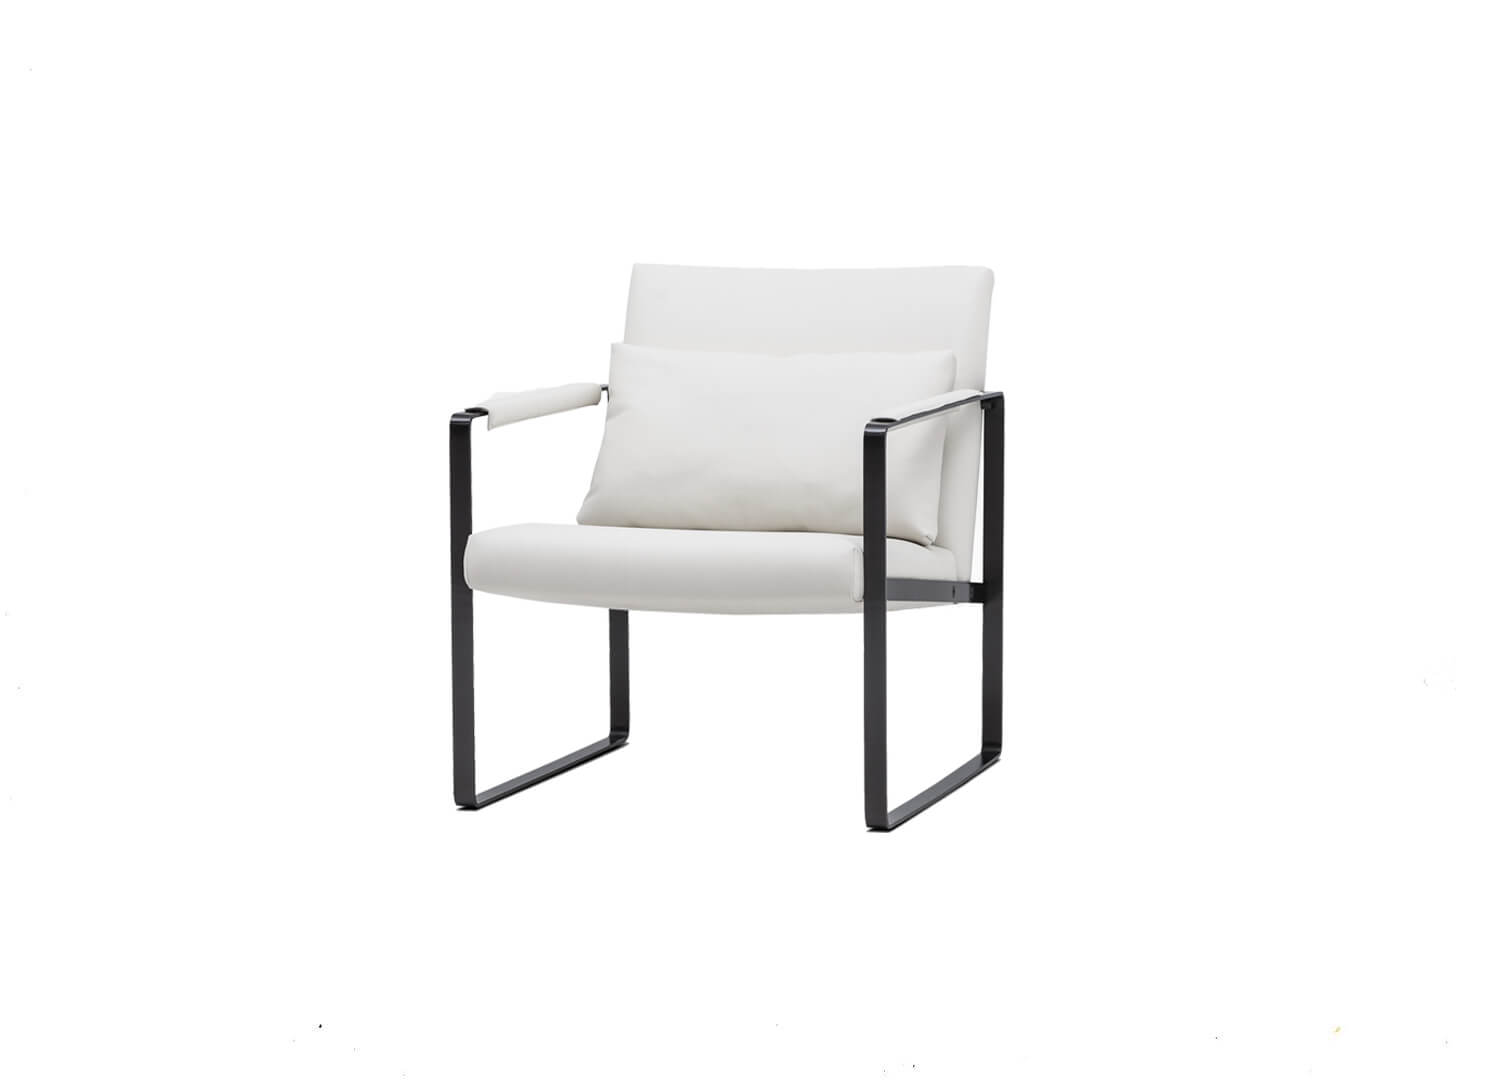 Remarkable Leman Lounge Chair By Camerich For Henri Living Est Living Pdpeps Interior Chair Design Pdpepsorg